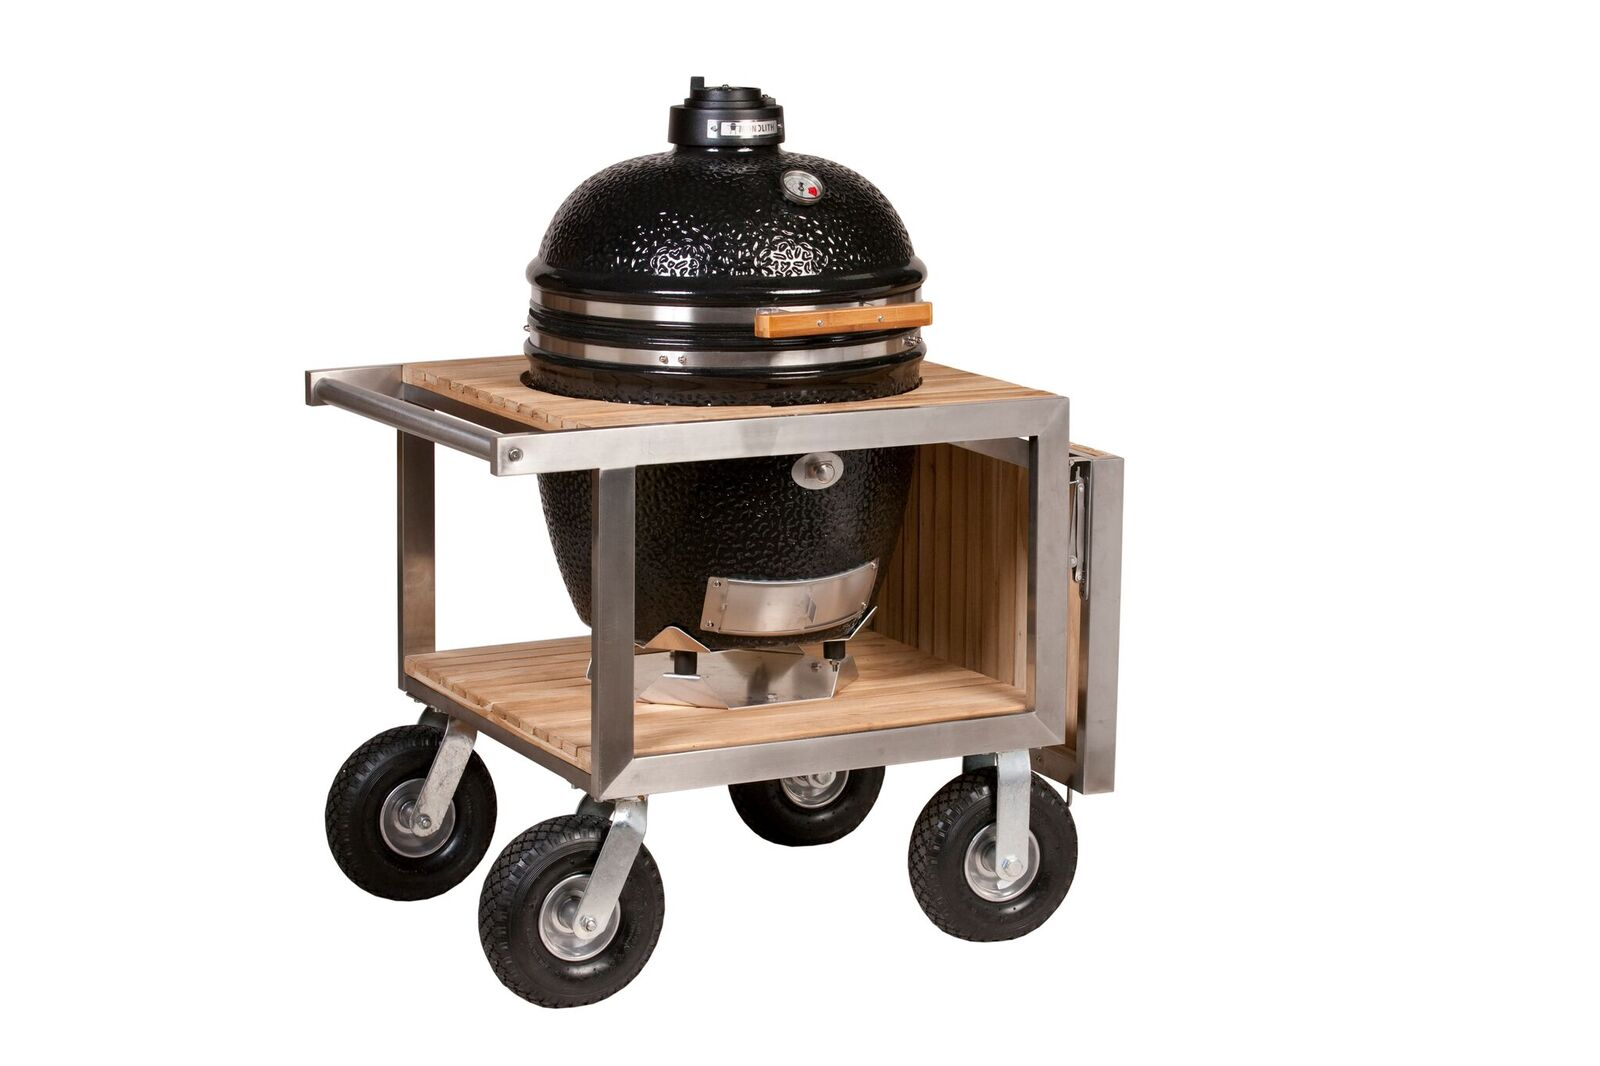 The Monolith ceramic grill in the stainless steel framed buggy with folding side shelf